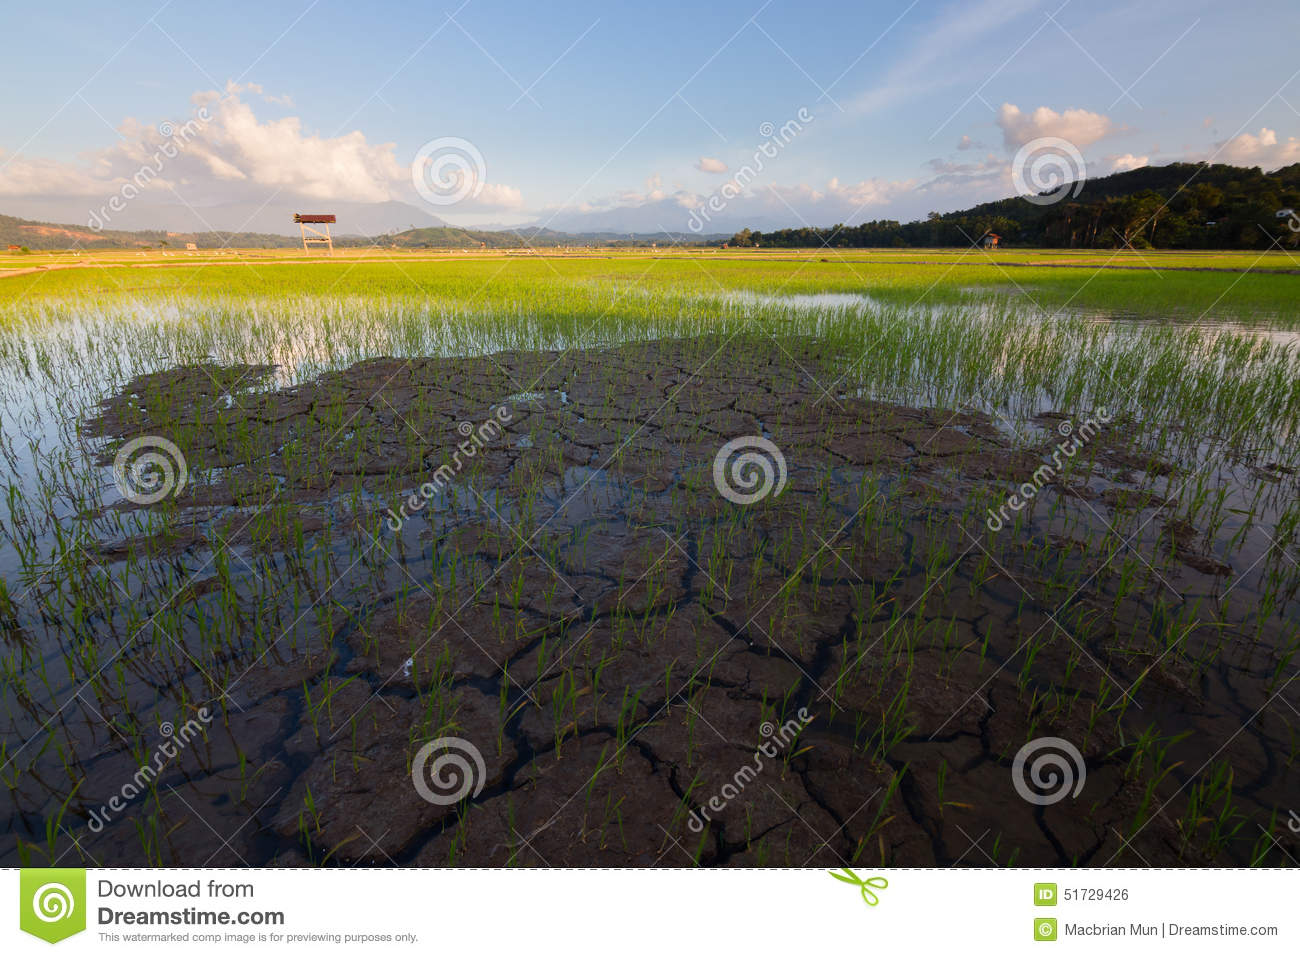 Kota Belud Malaysia  City new picture : ... soil on a paddy field in Kota Belud, Sabah, Borneo, East Malaysia